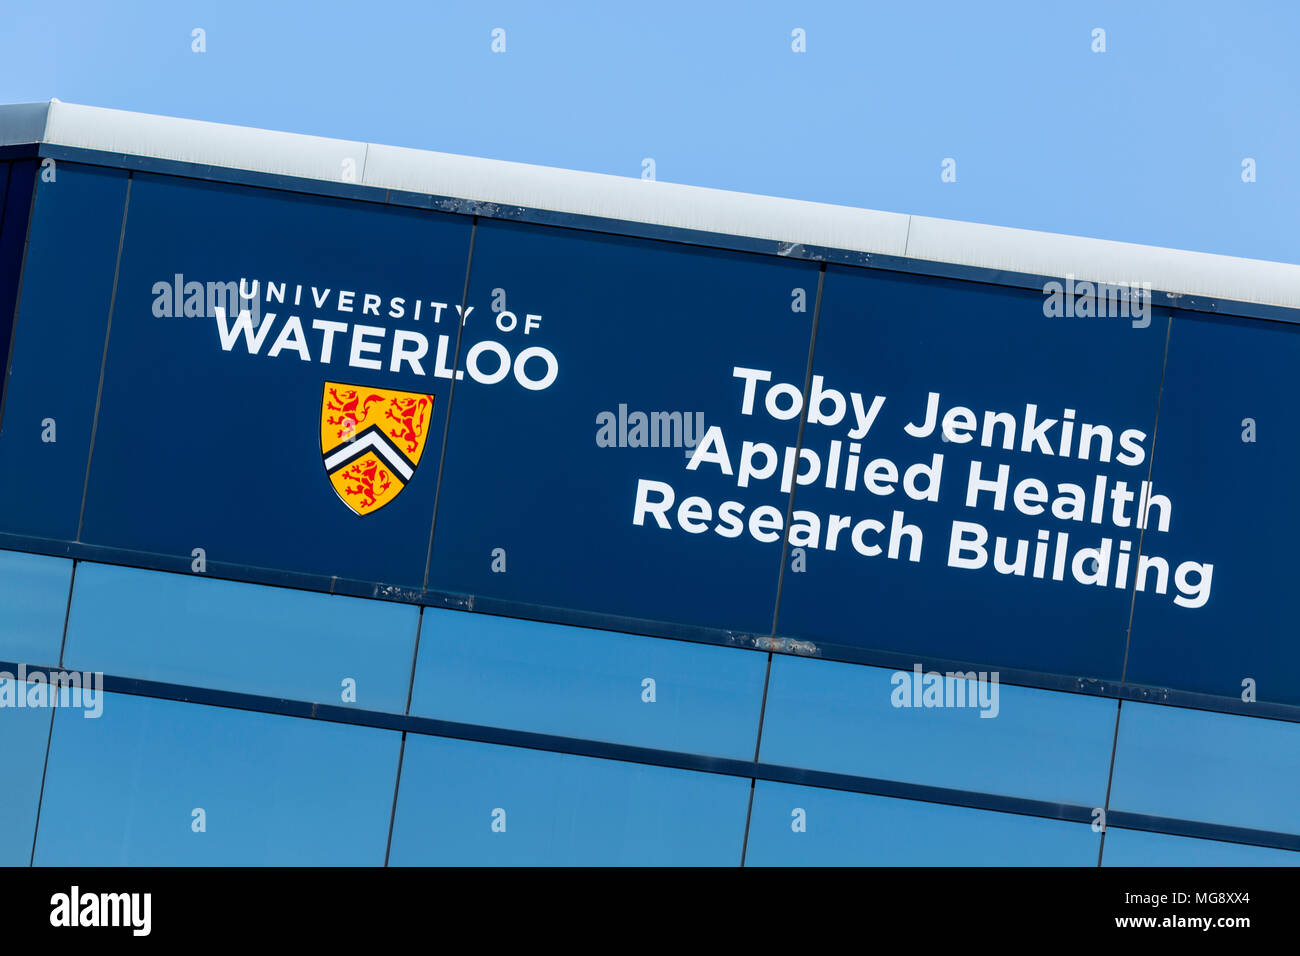 University Of Waterloo Stock Photos & University Of Waterloo Stock ...